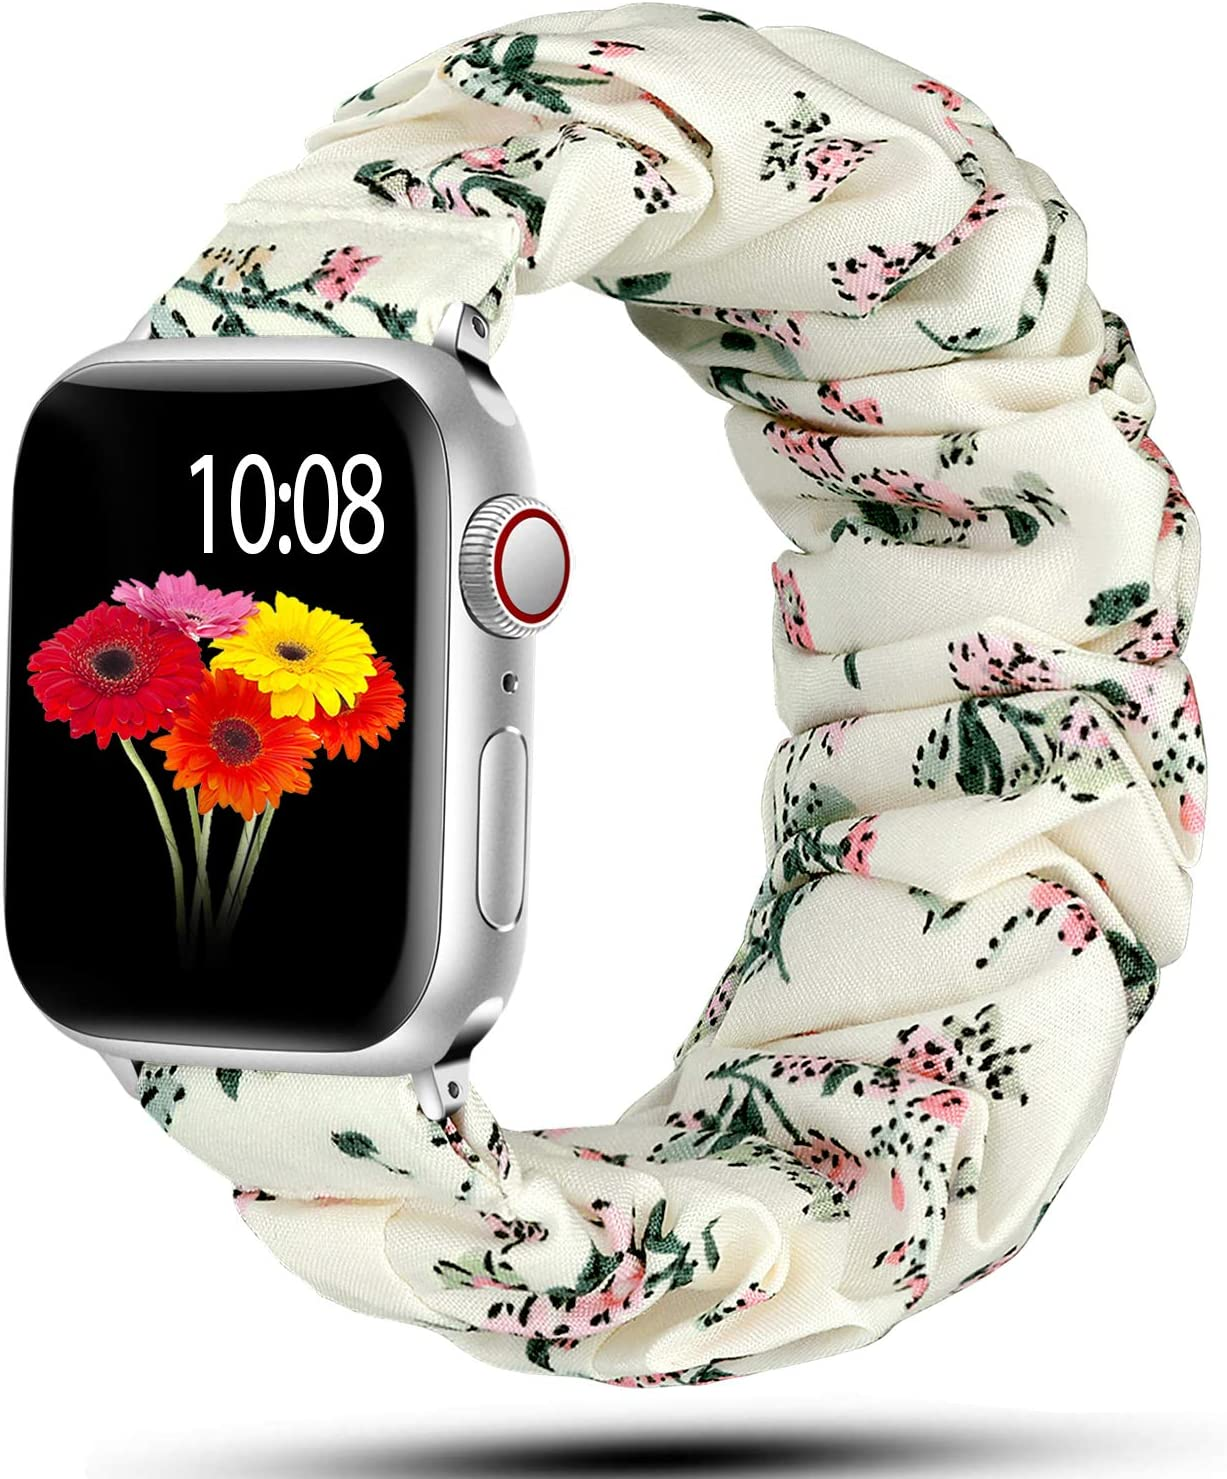 Muranne Scrunchie Band Compatible for Apple Watch 38mm 40mm Cute Solid Color Stretchy Wrist Strap Bracelet for iWatch SE & Series 6 5 4 3 2 1 Wildflowers 38mm/40mm Small